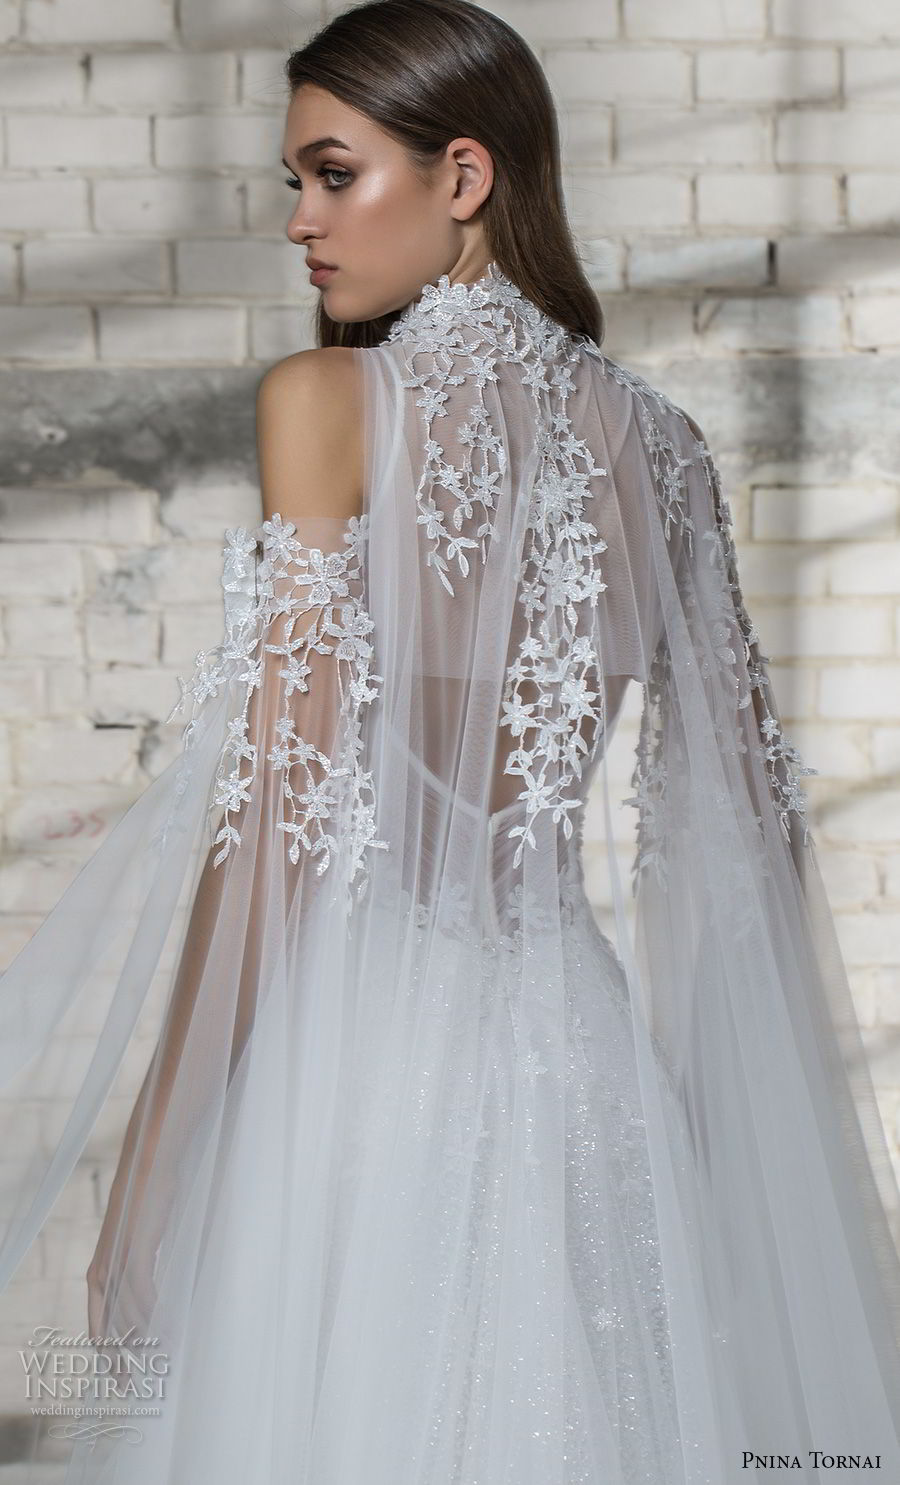 pnina tornai 2019 love bridal cold shoulder illusion high neck deep sweetheart neckline heavily embellished bodice romantic princess a line wedding dress sheer lace back chapel train (6) zbv